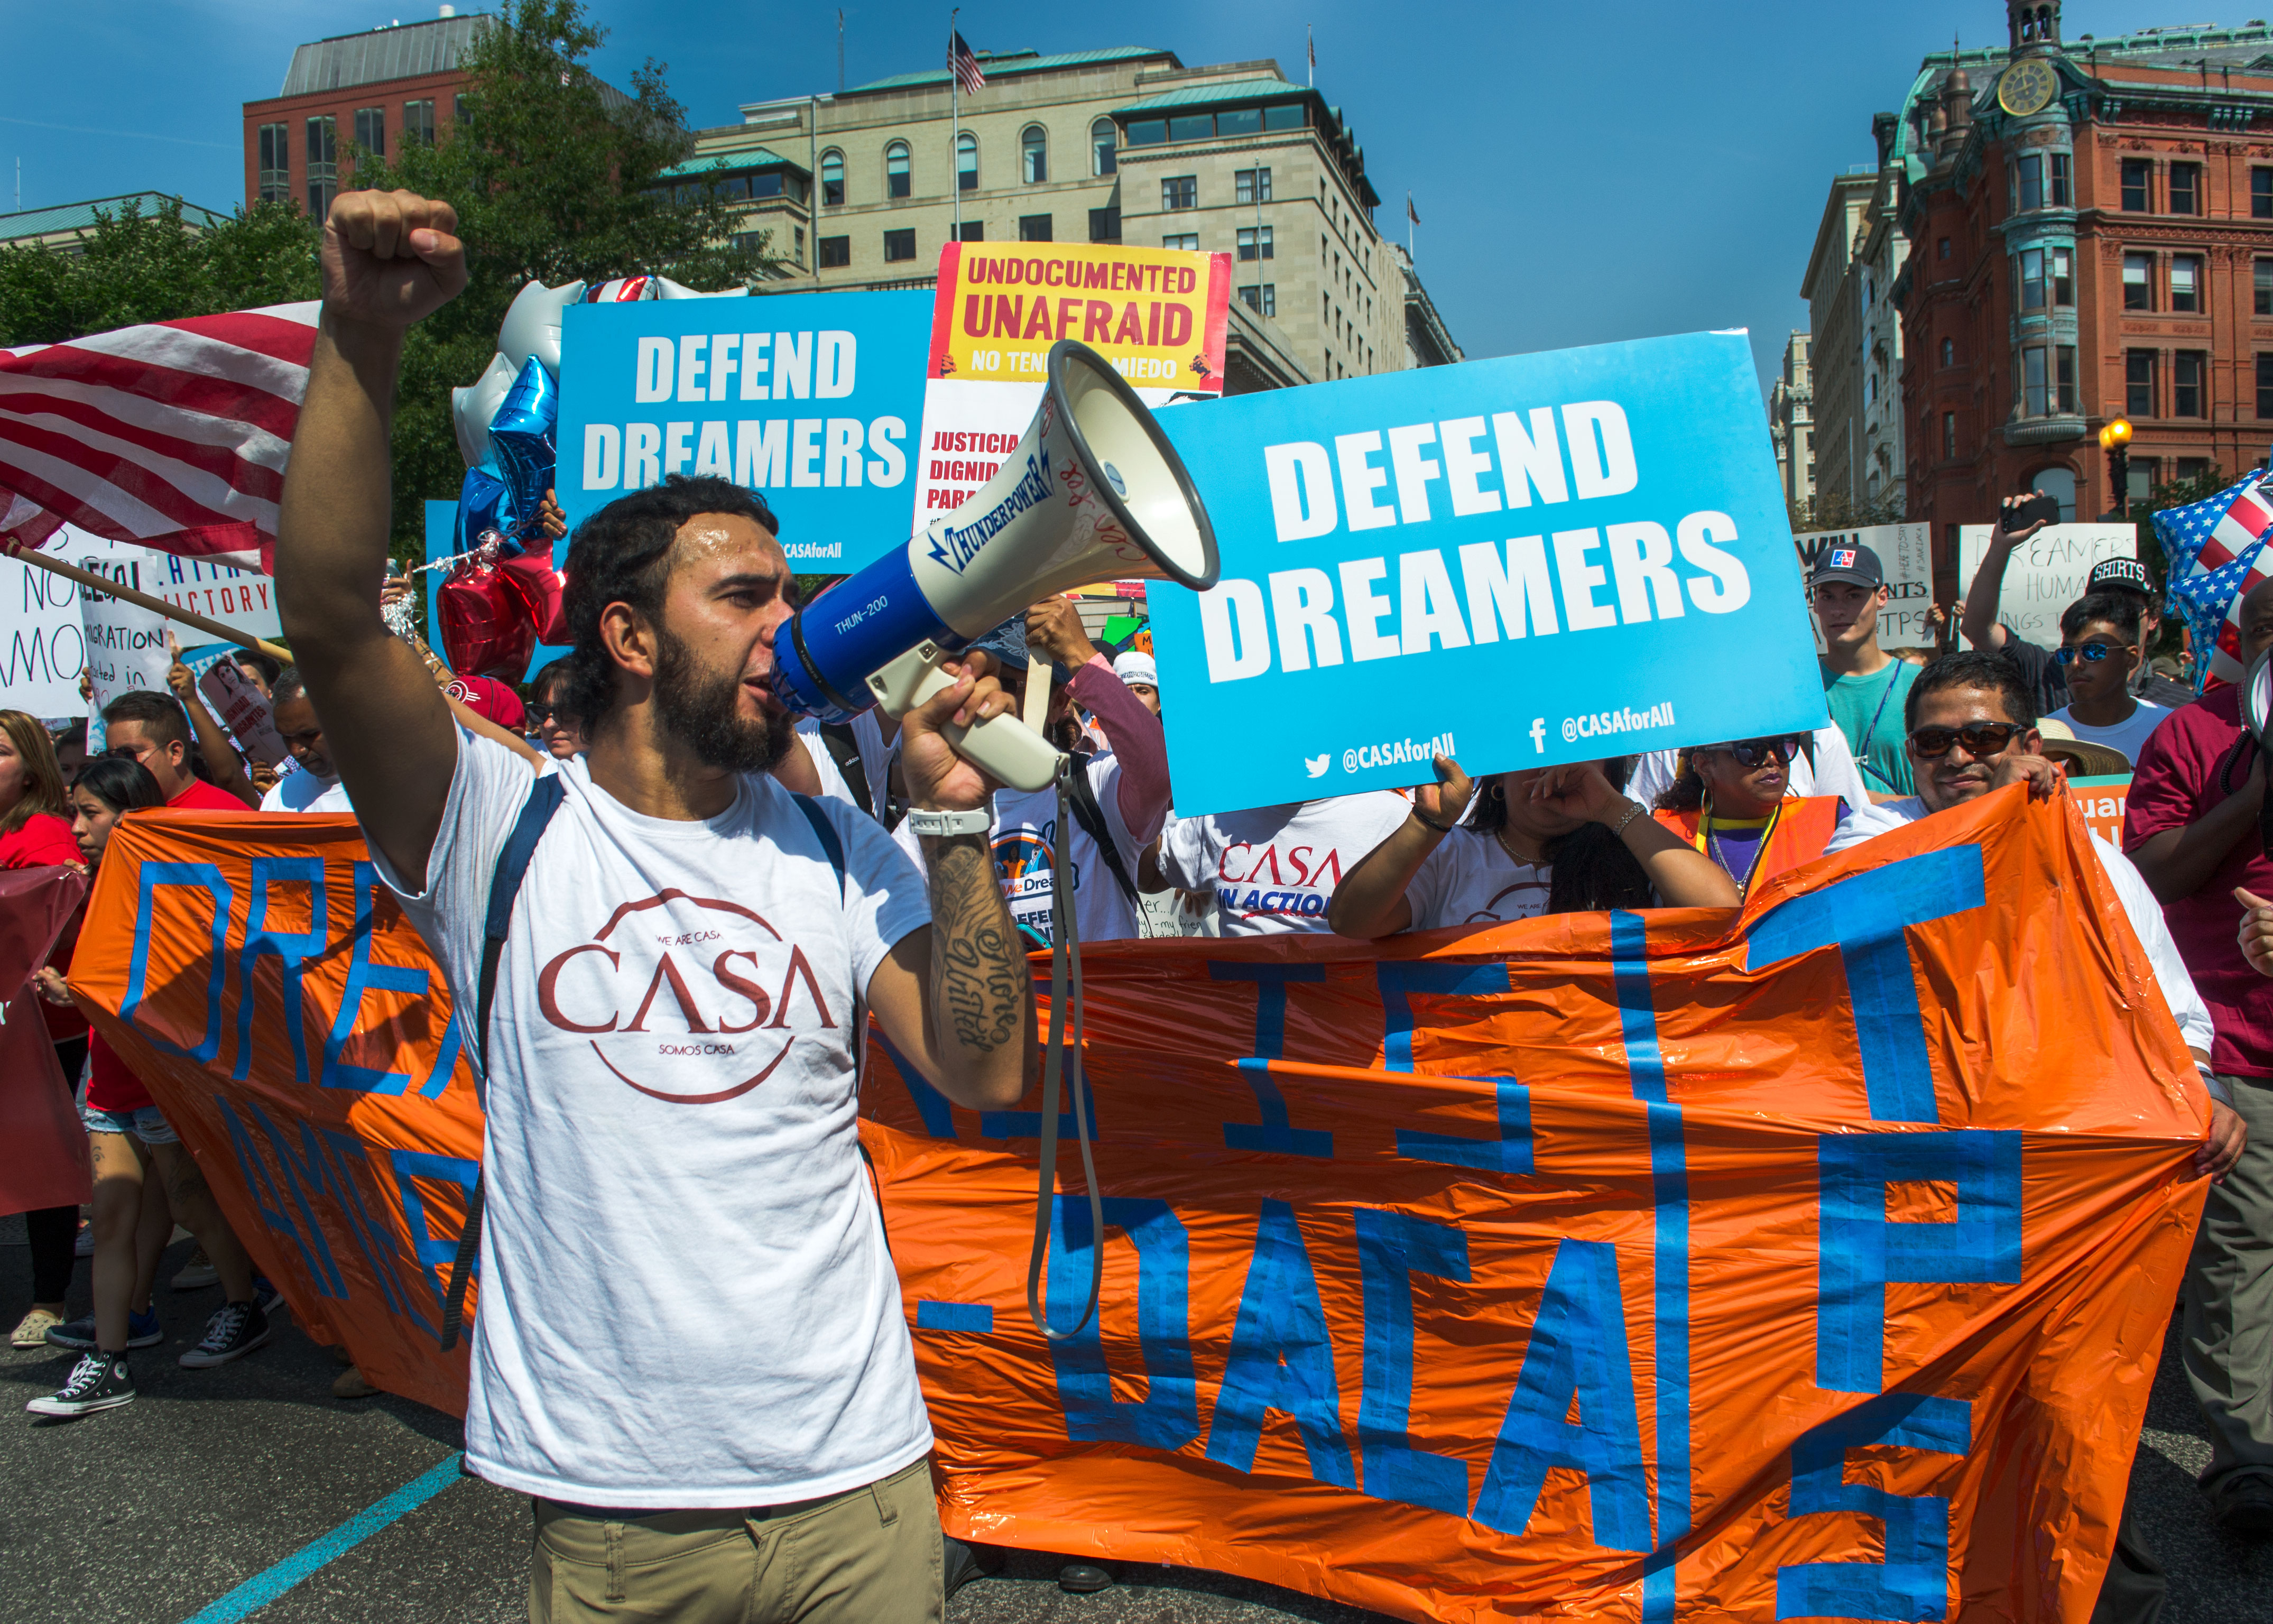 March Supporting DACA and TPS